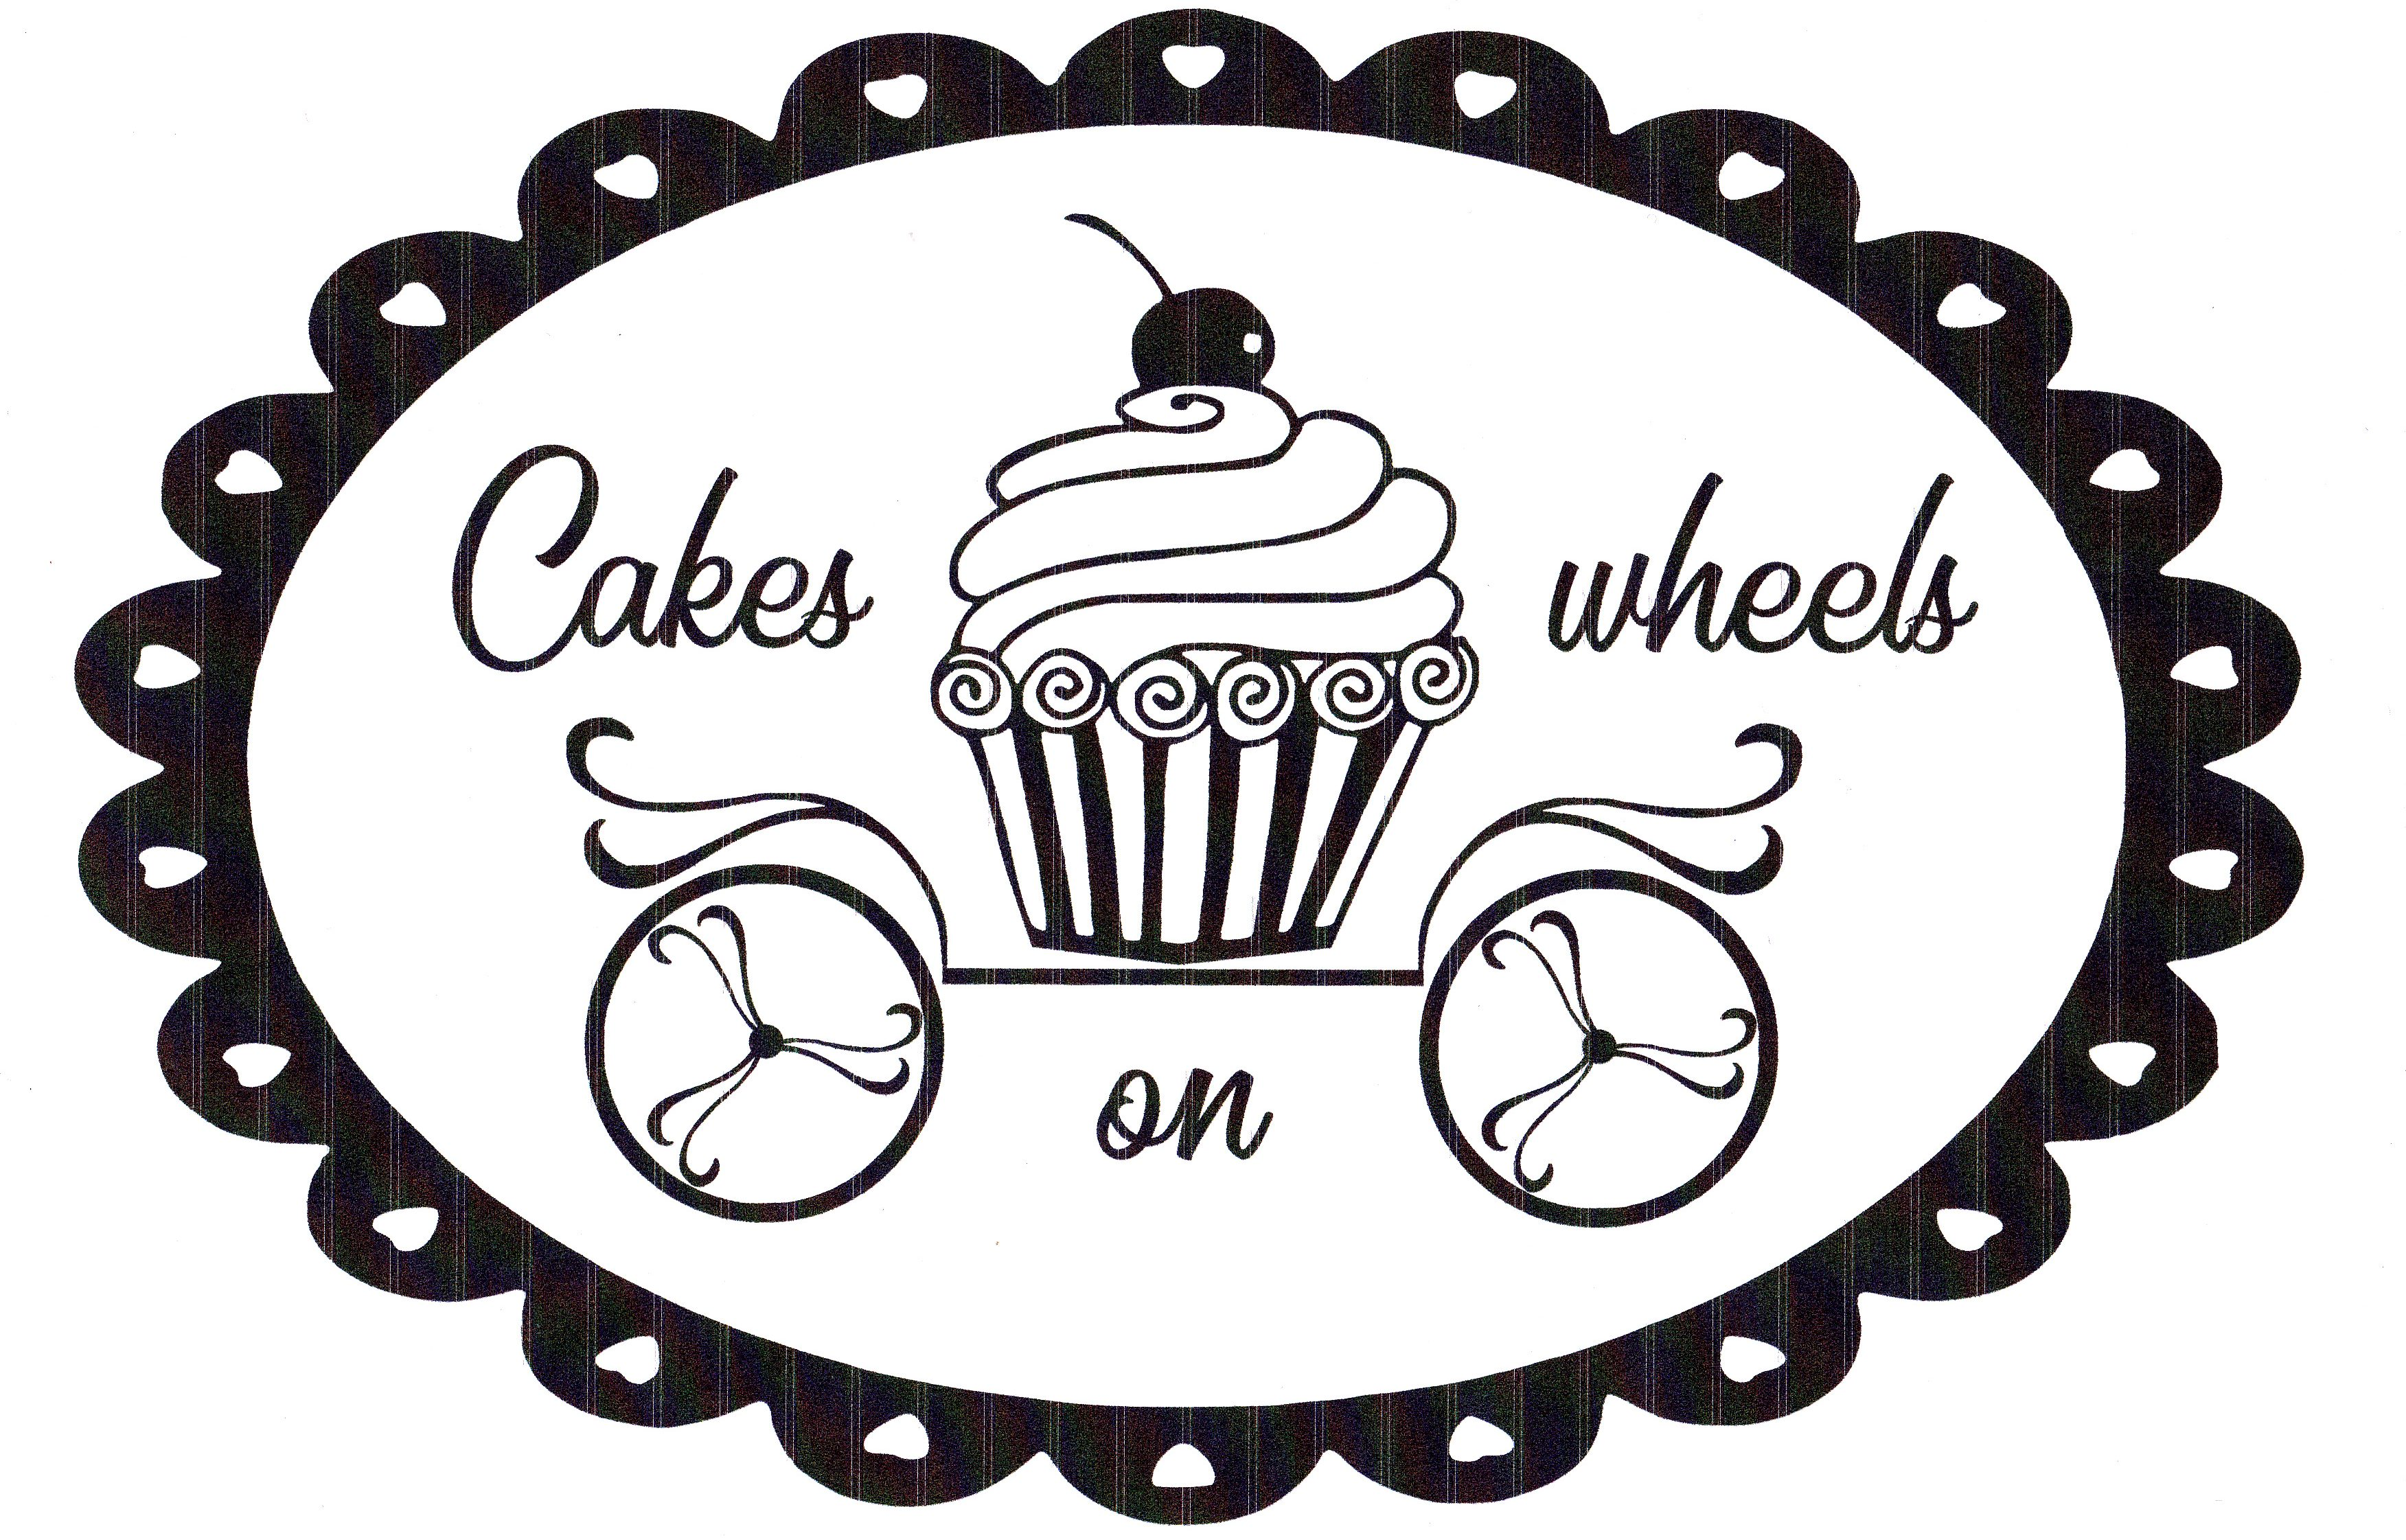 Cakes on wheels